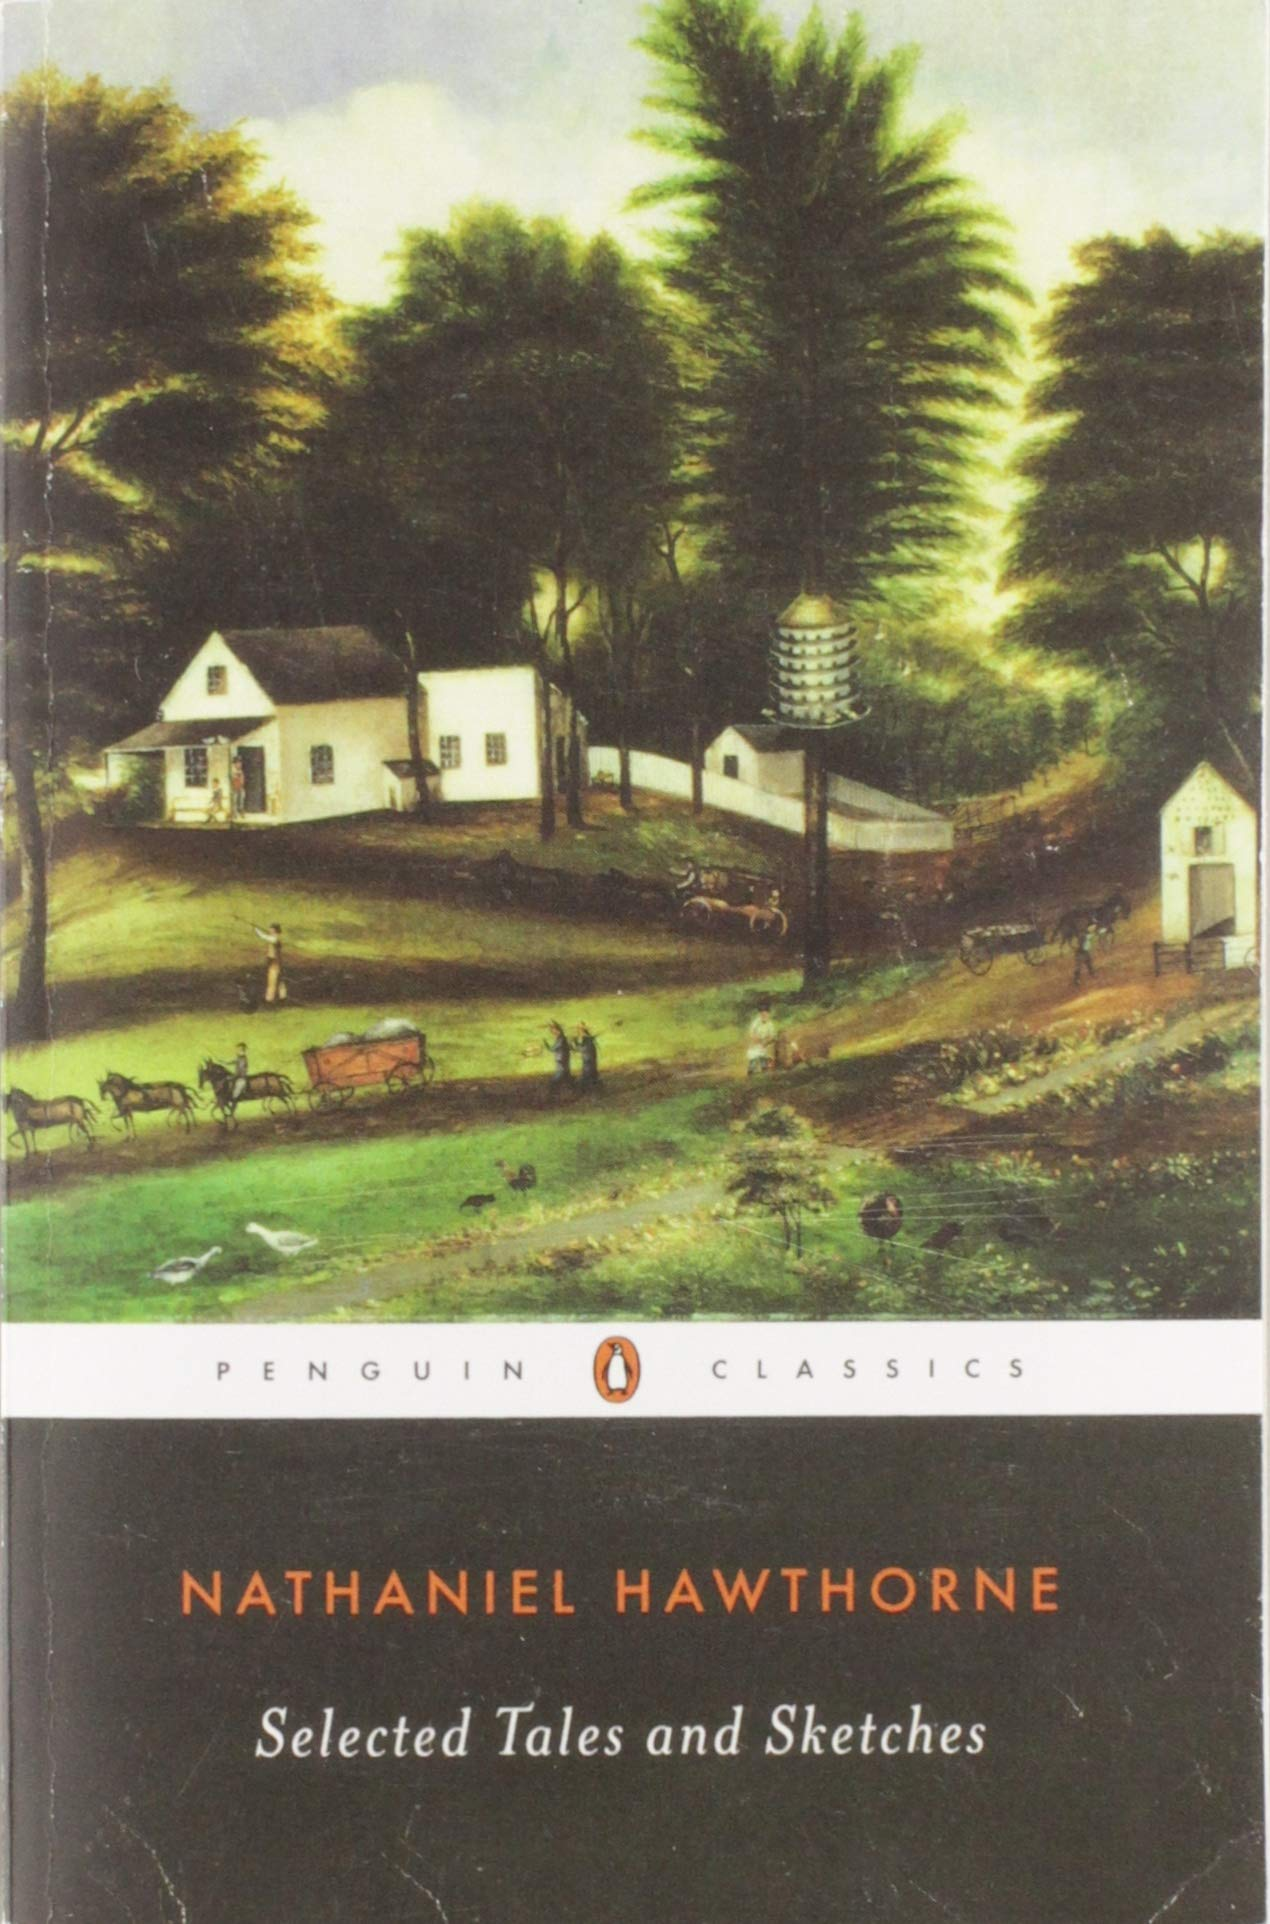 Selected Tales and Sketches (Penguin Classics): Nathaniel